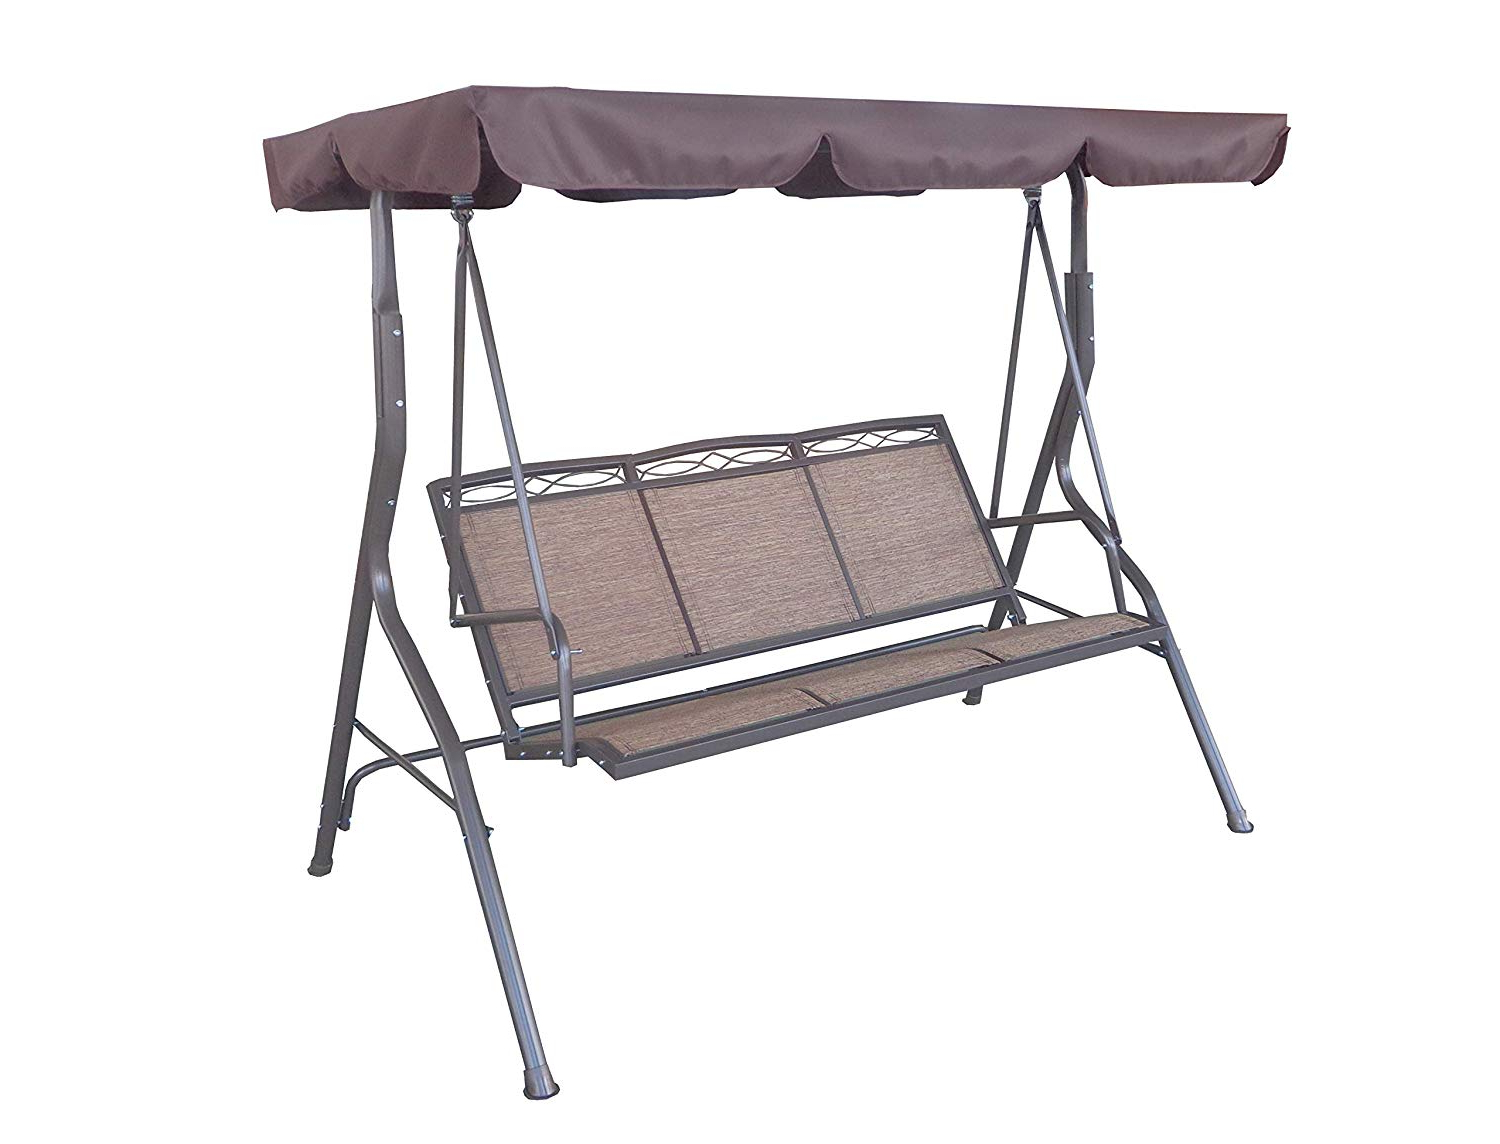 Trendy 2 Person Outdoor Convertible Canopy Swing Gliders With Removable Cushions Beige Throughout Amazon : Cc Outdoor Living (View 29 of 30)